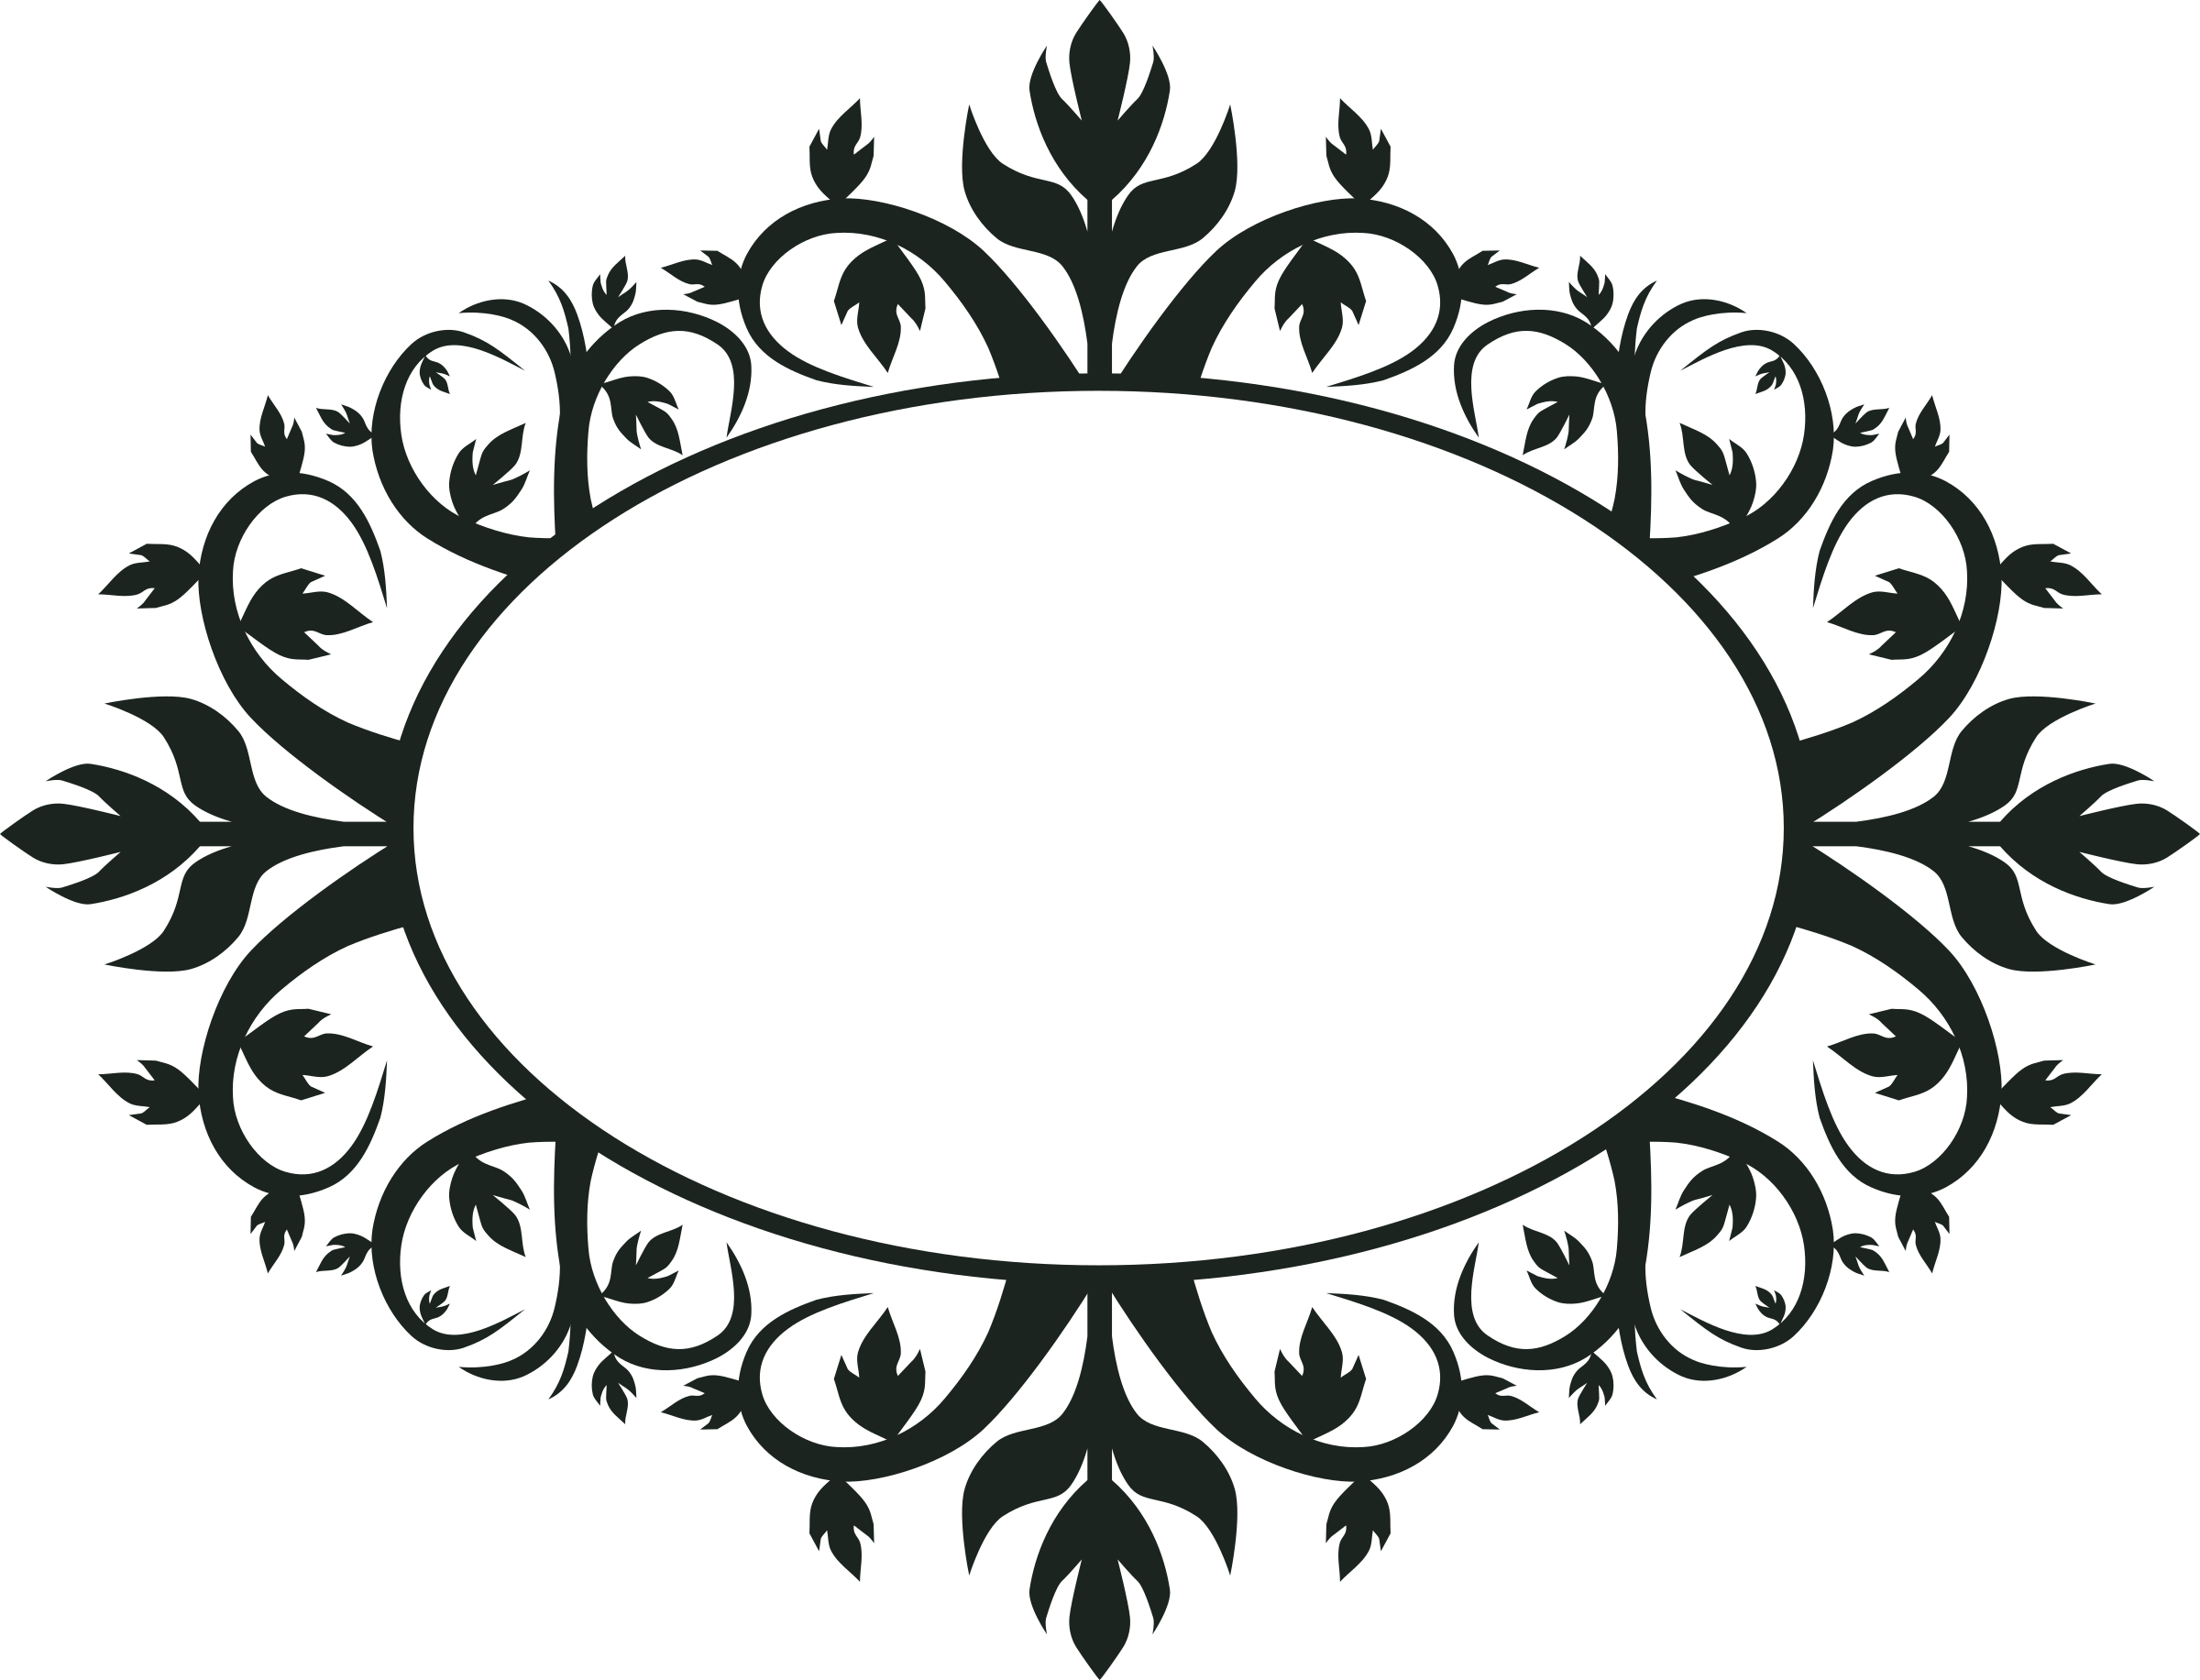 Monogram border png. Ornament oval frame by